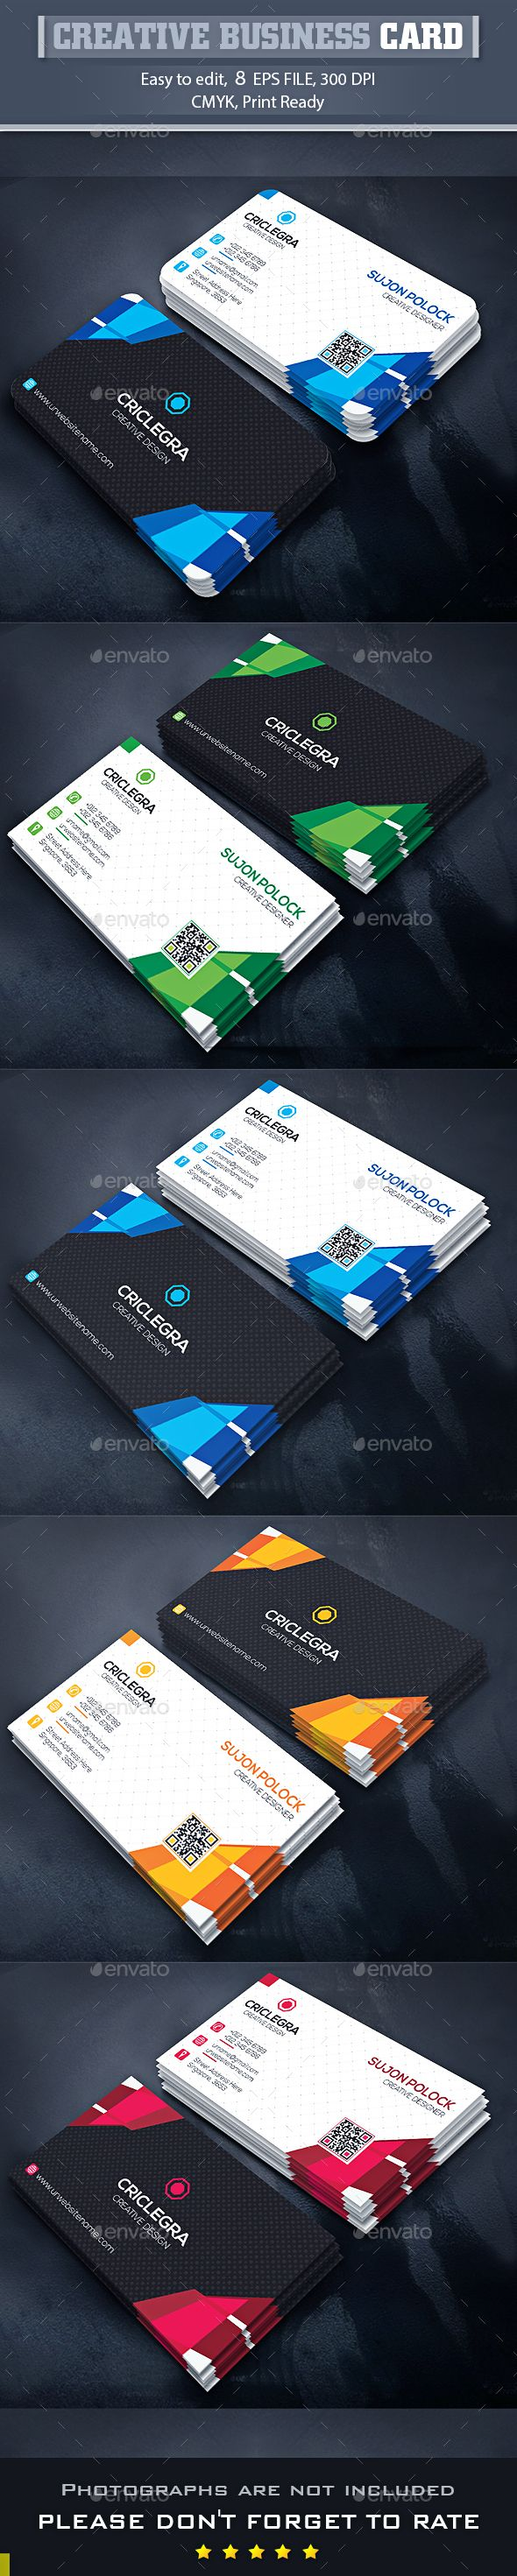 315 best business card concepts images on pinterest business card business card design idea business card template vector eps ai illustrator download here accmission Choice Image